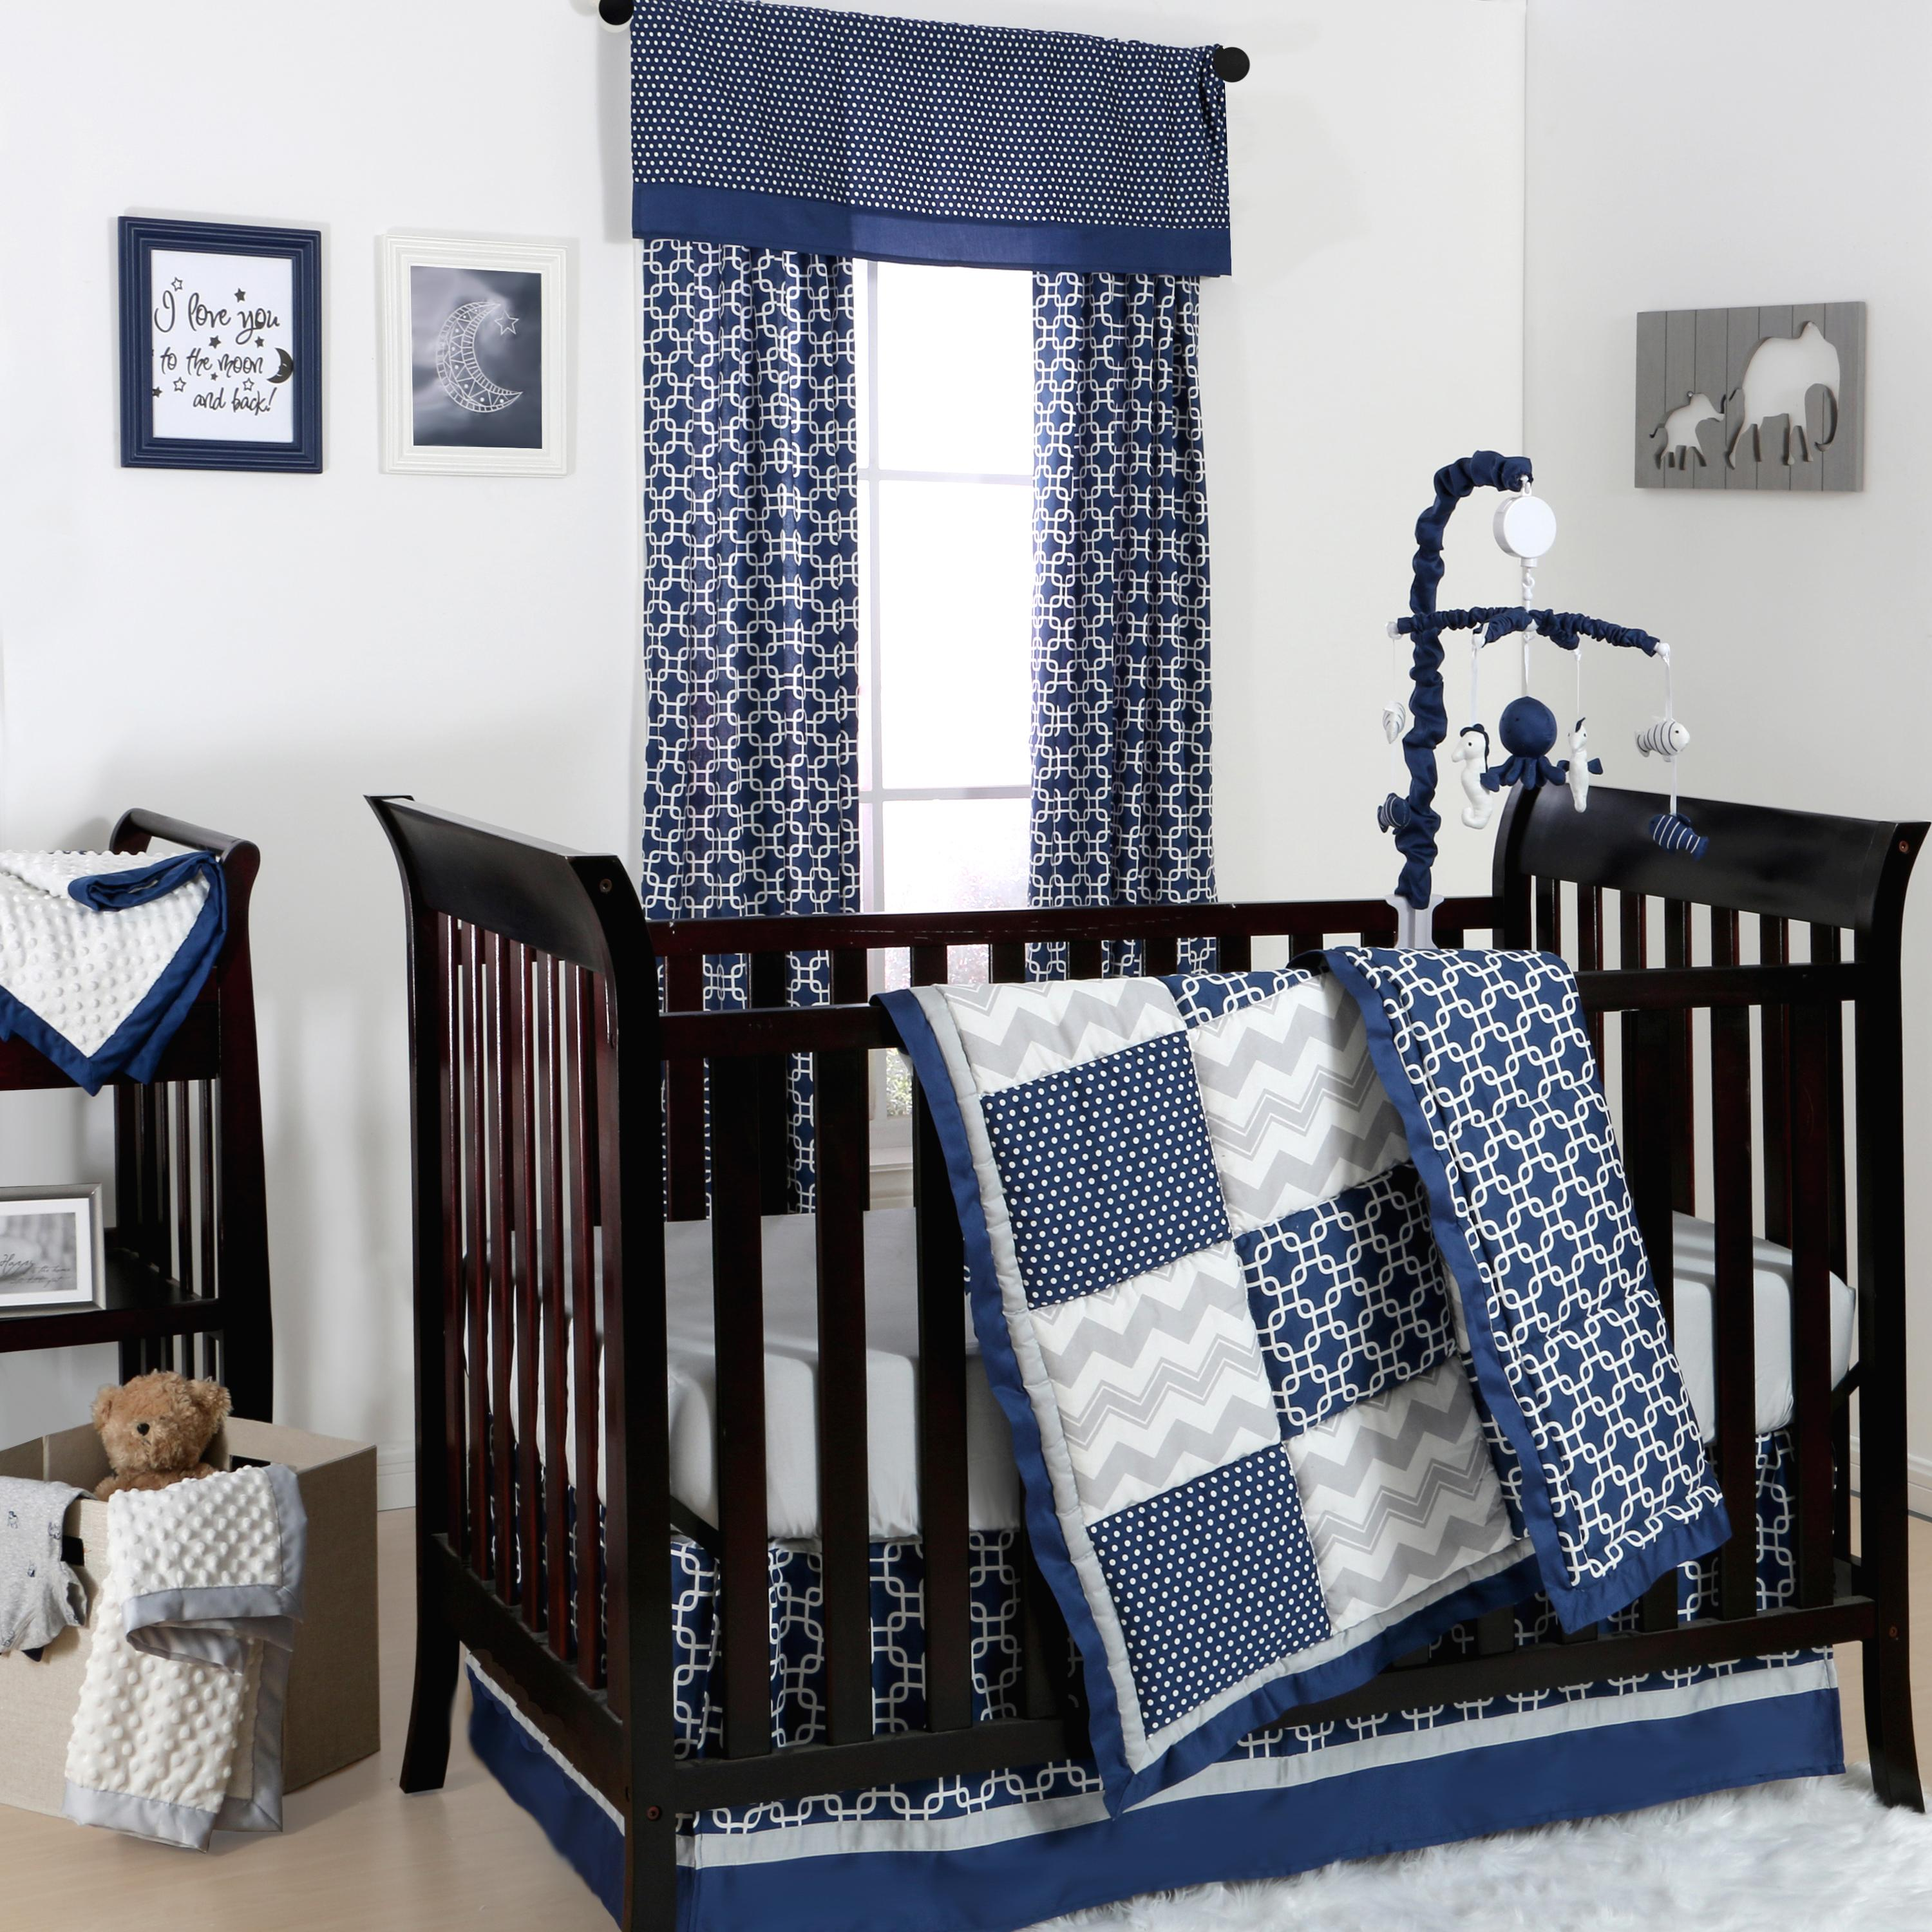 boys sensational cheap amazing baby twin pictures little girl bedding with girls of tips duvet kids full uk furniture walmart stores quilts canada room amazingle suites single large toddler size chairs covers frame bedroom trundle sets etsy for headboards duvets pink childrens boy drawers frames quilt and forest